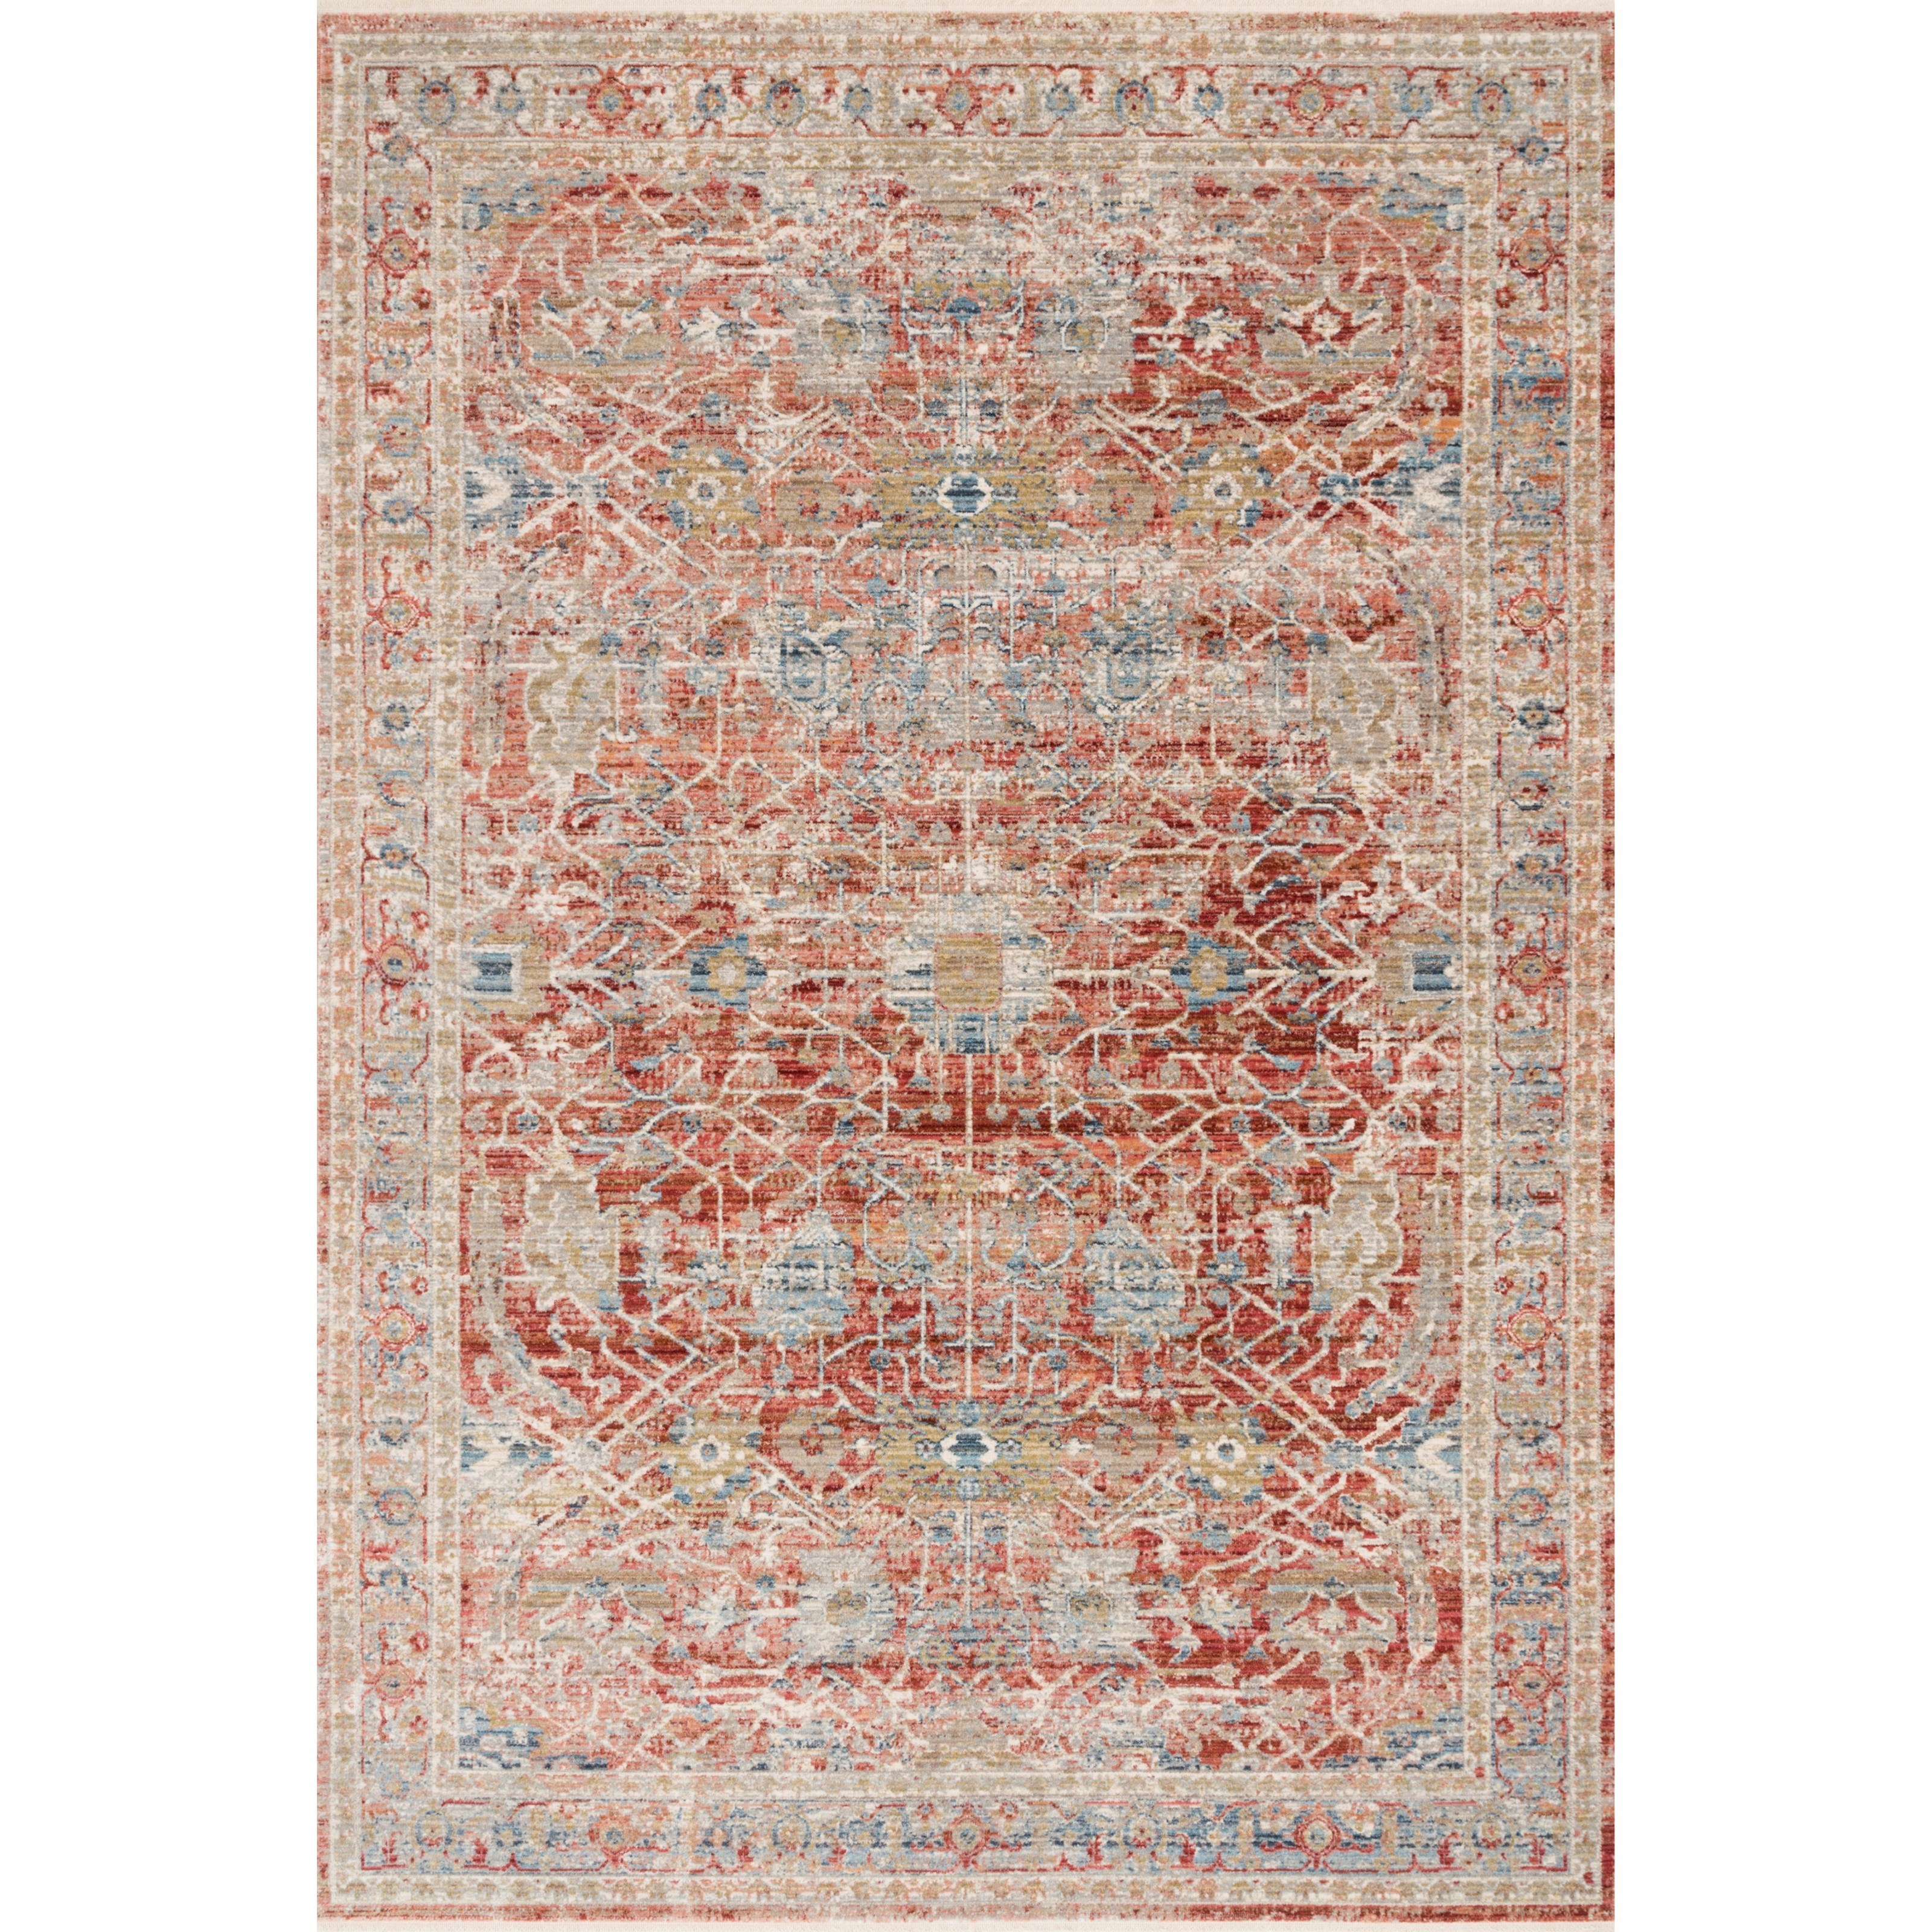 """Claire 1'6"""" x 1'6""""  Red / Ivory Rug by Loloi Rugs at Virginia Furniture Market"""